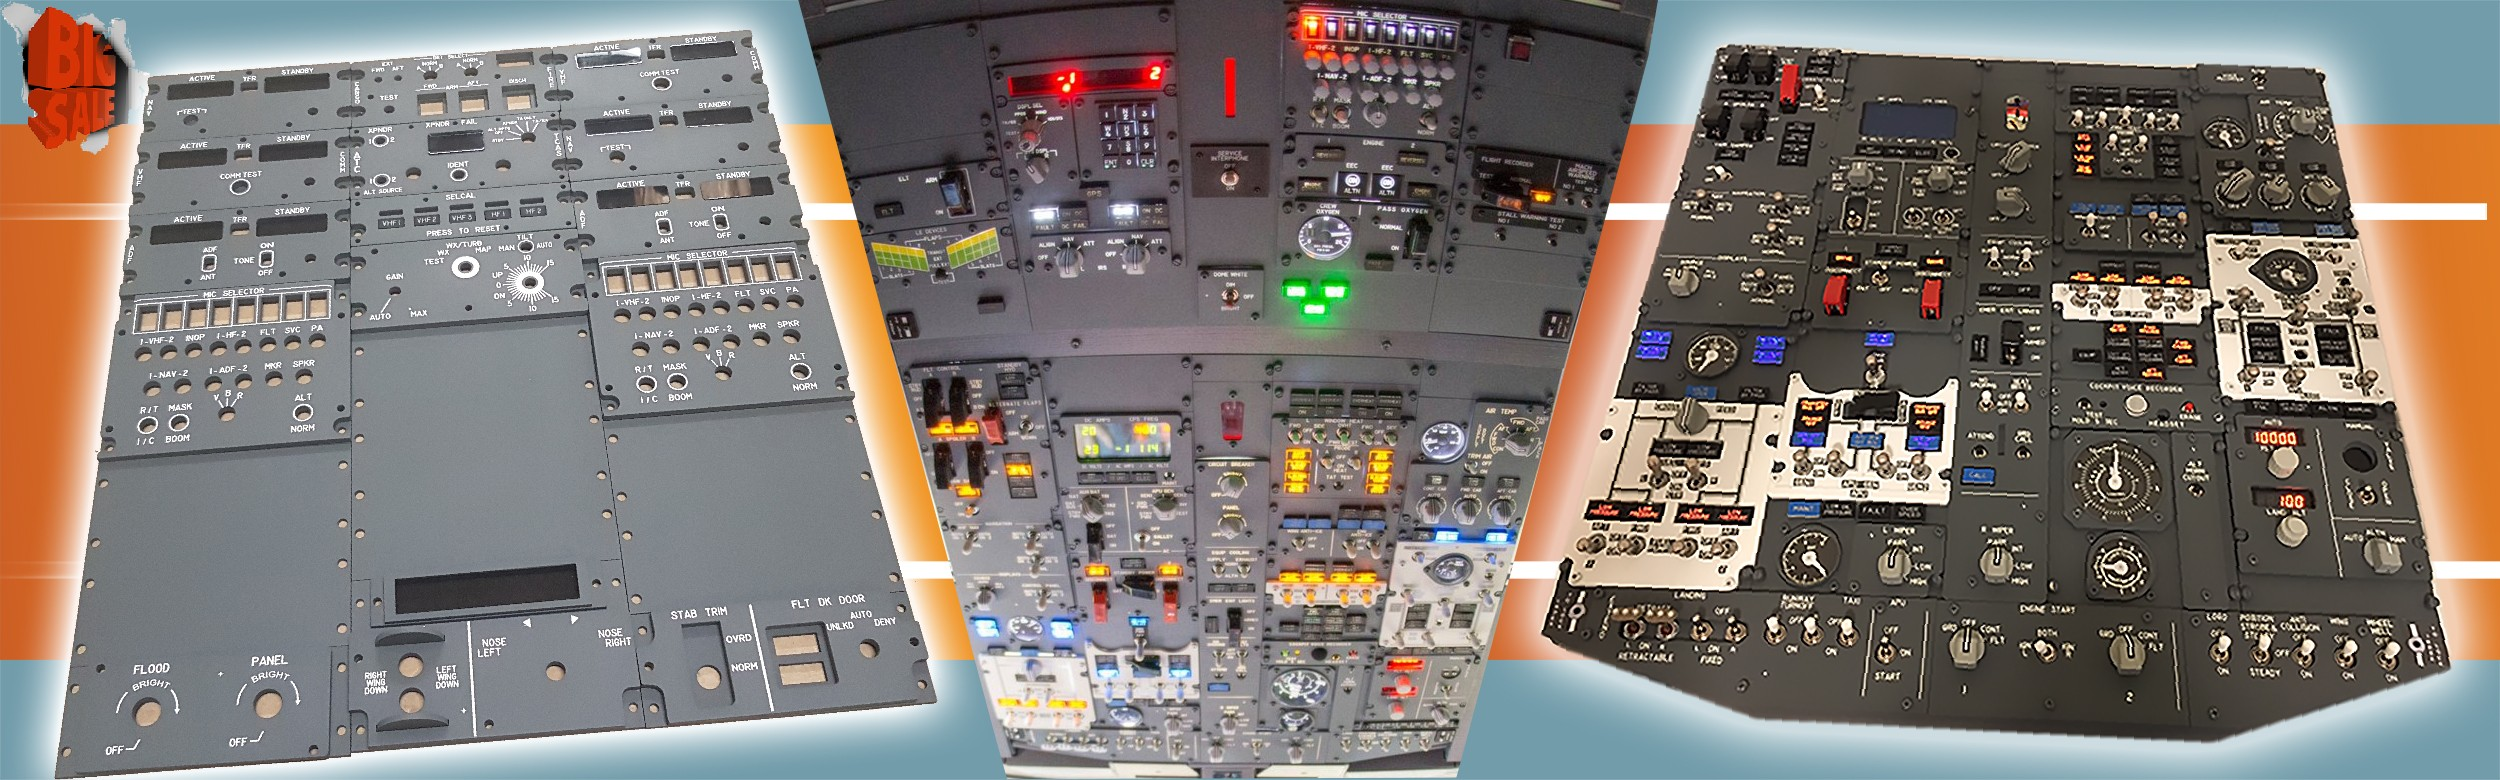 Cockpit Sim Parts Panels